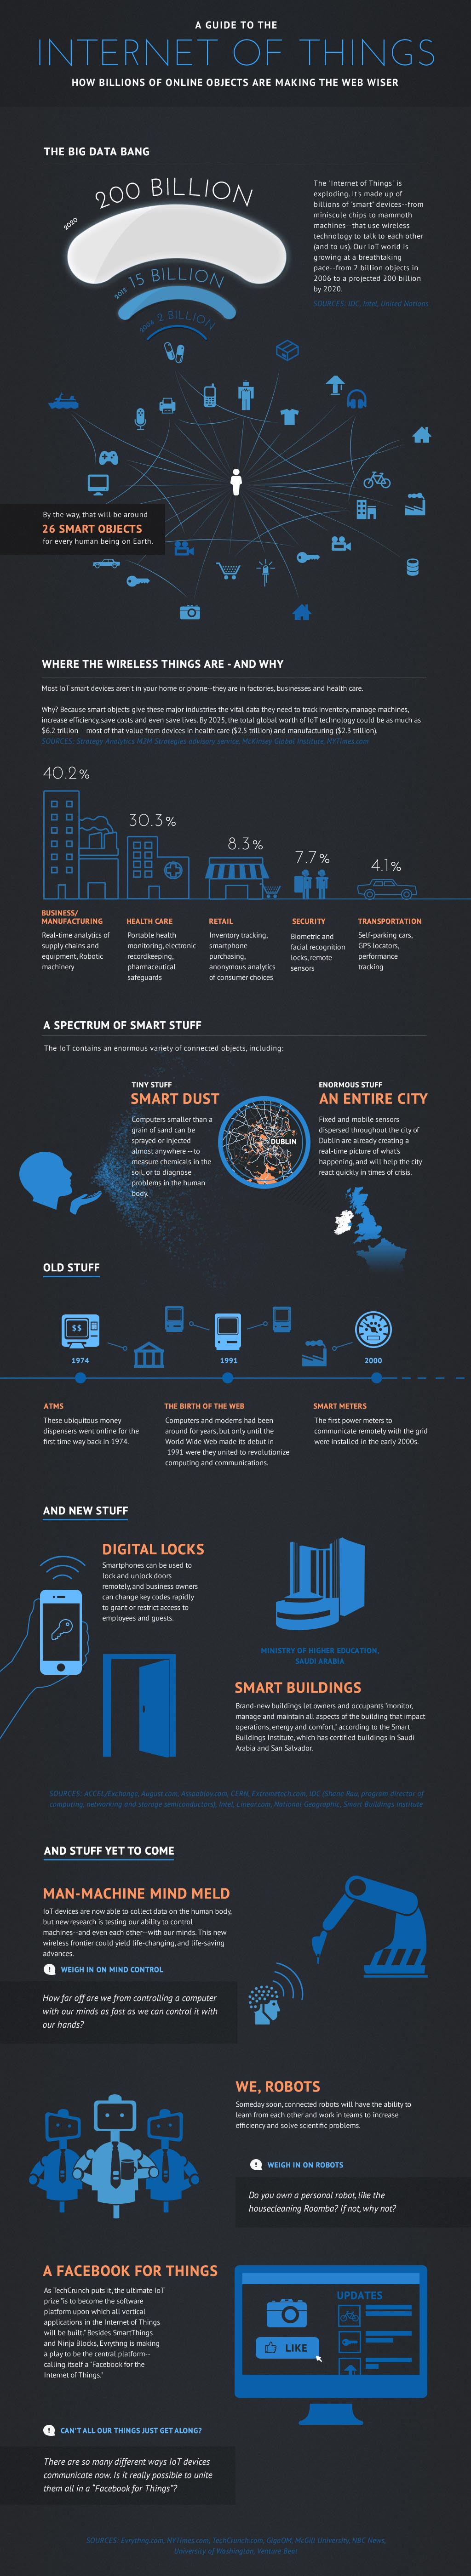 guide-to-iot-infographic